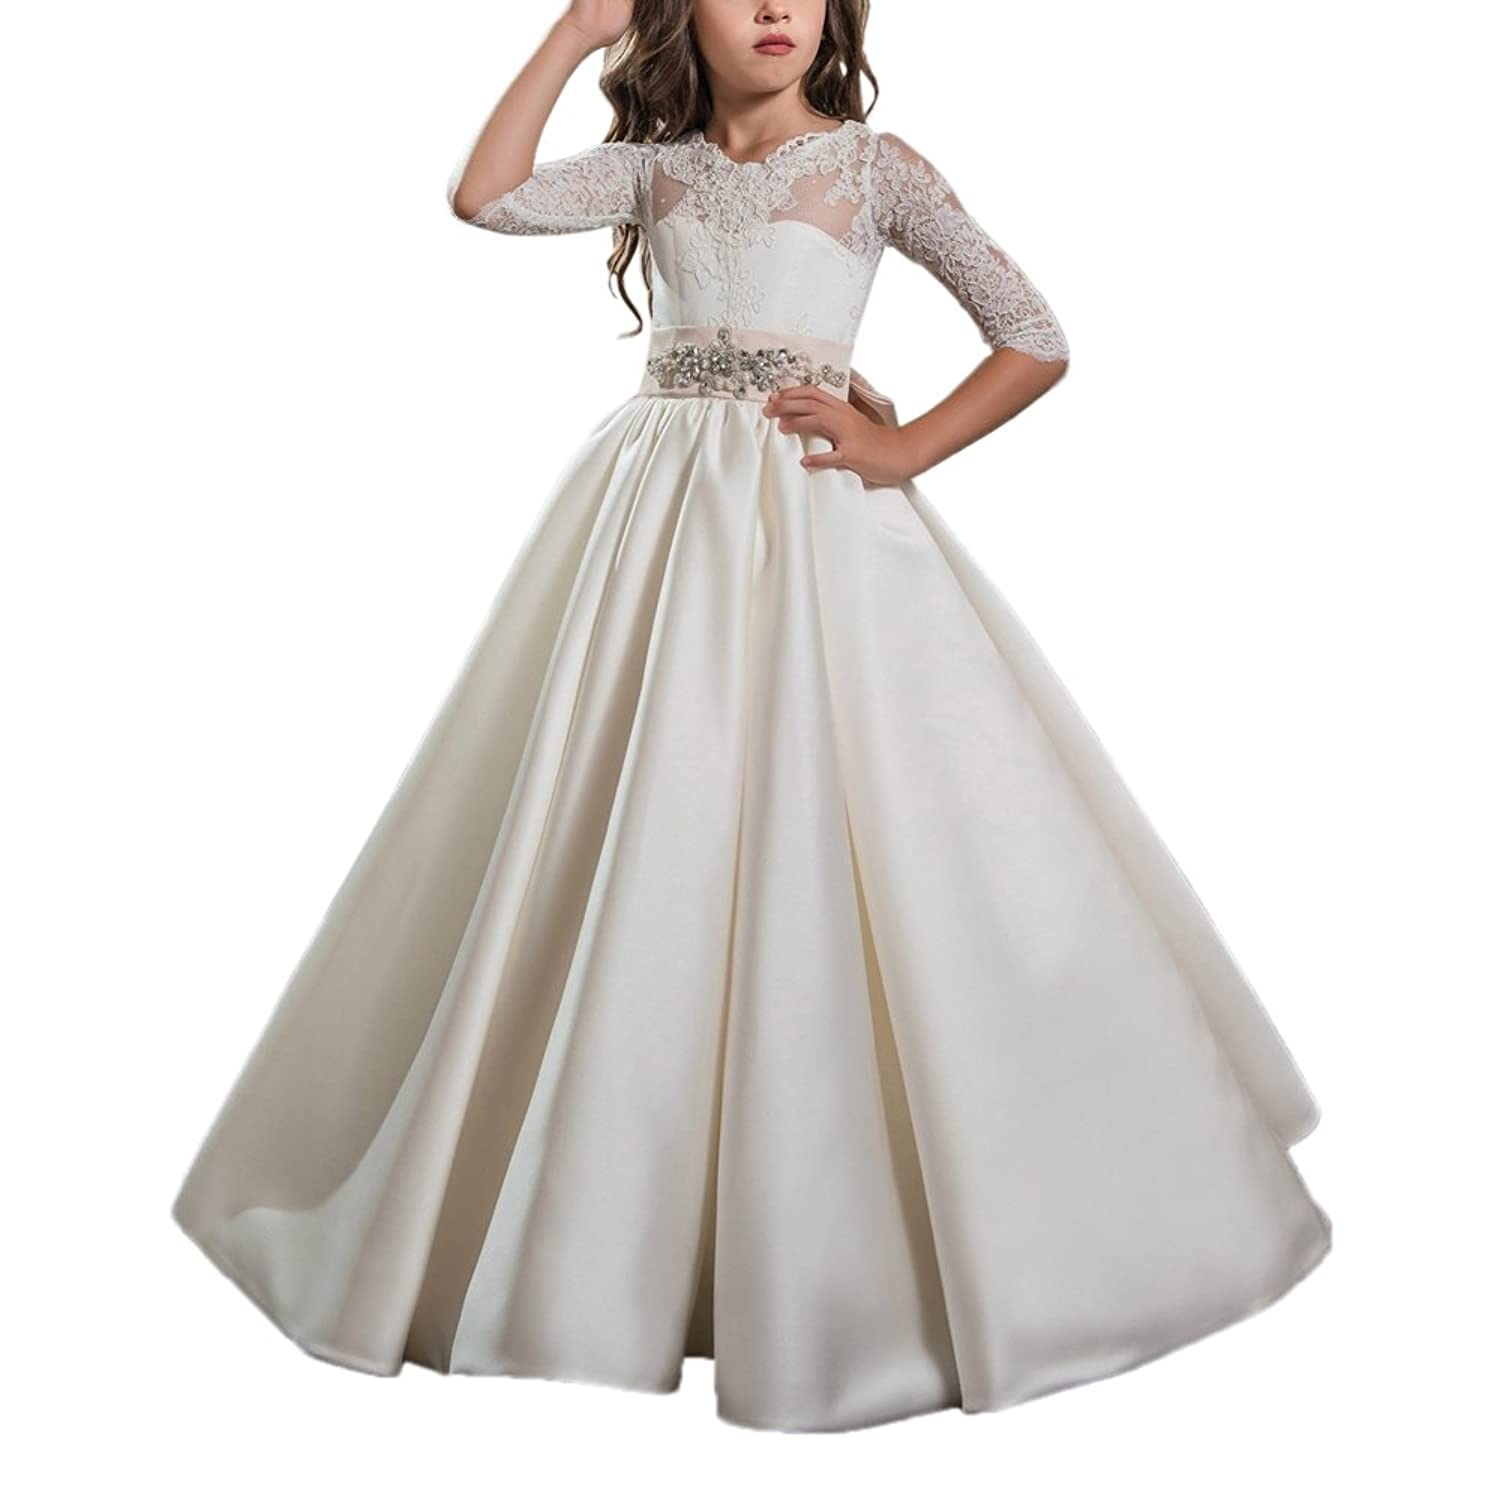 bfd12f358f00 AbaoSisters Elegant Flower Girl Dress for Wedding Kids Half Sleeves Lace  Pageant Ball Gowns